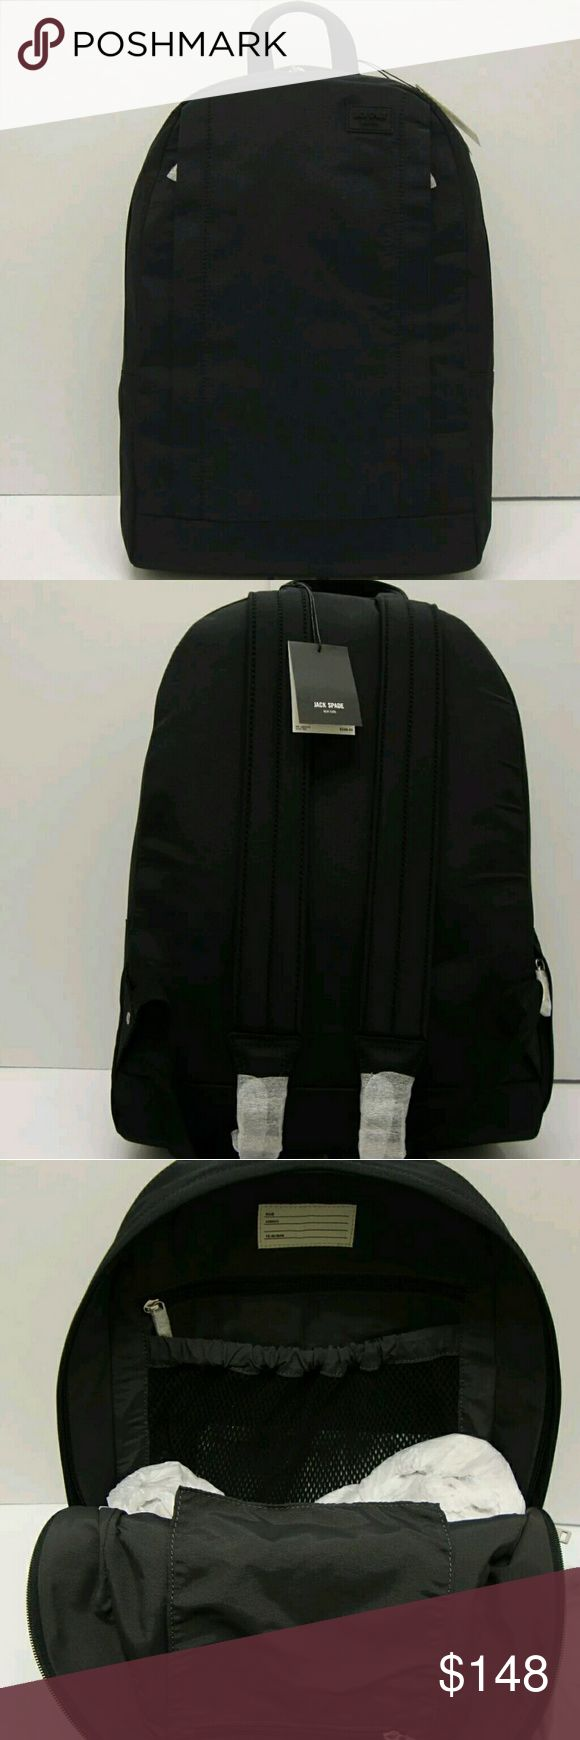 Jack Spade Tech Backpack New with tags Jack Spade Bags Backpacks